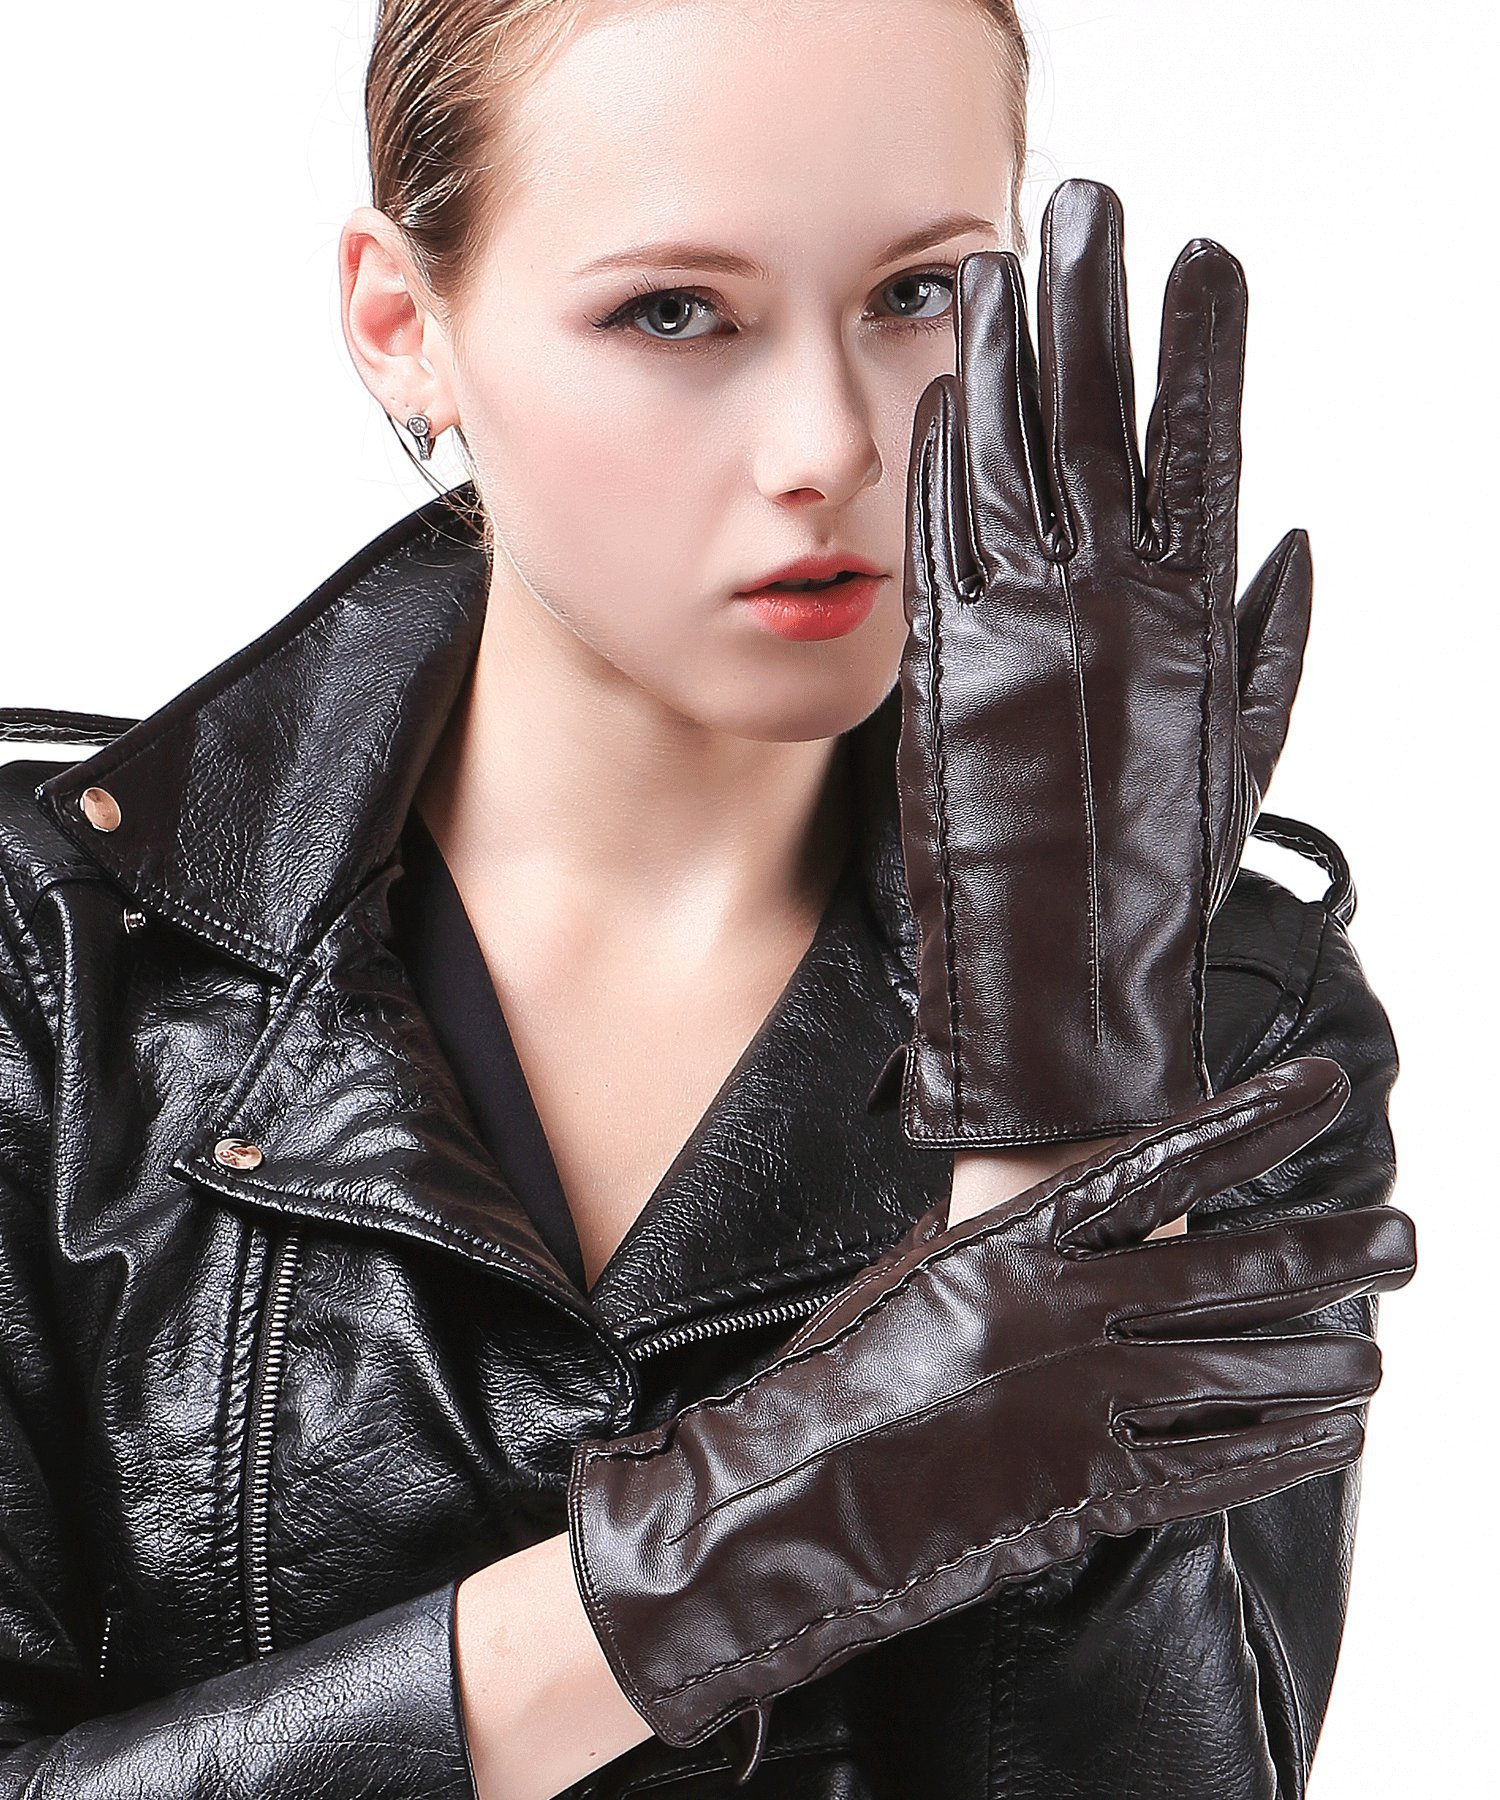 Harrms Best Luxury touchscreen Italian Nappa Genuine Leather Gloves for women's Texting Driving Cashmere Lining